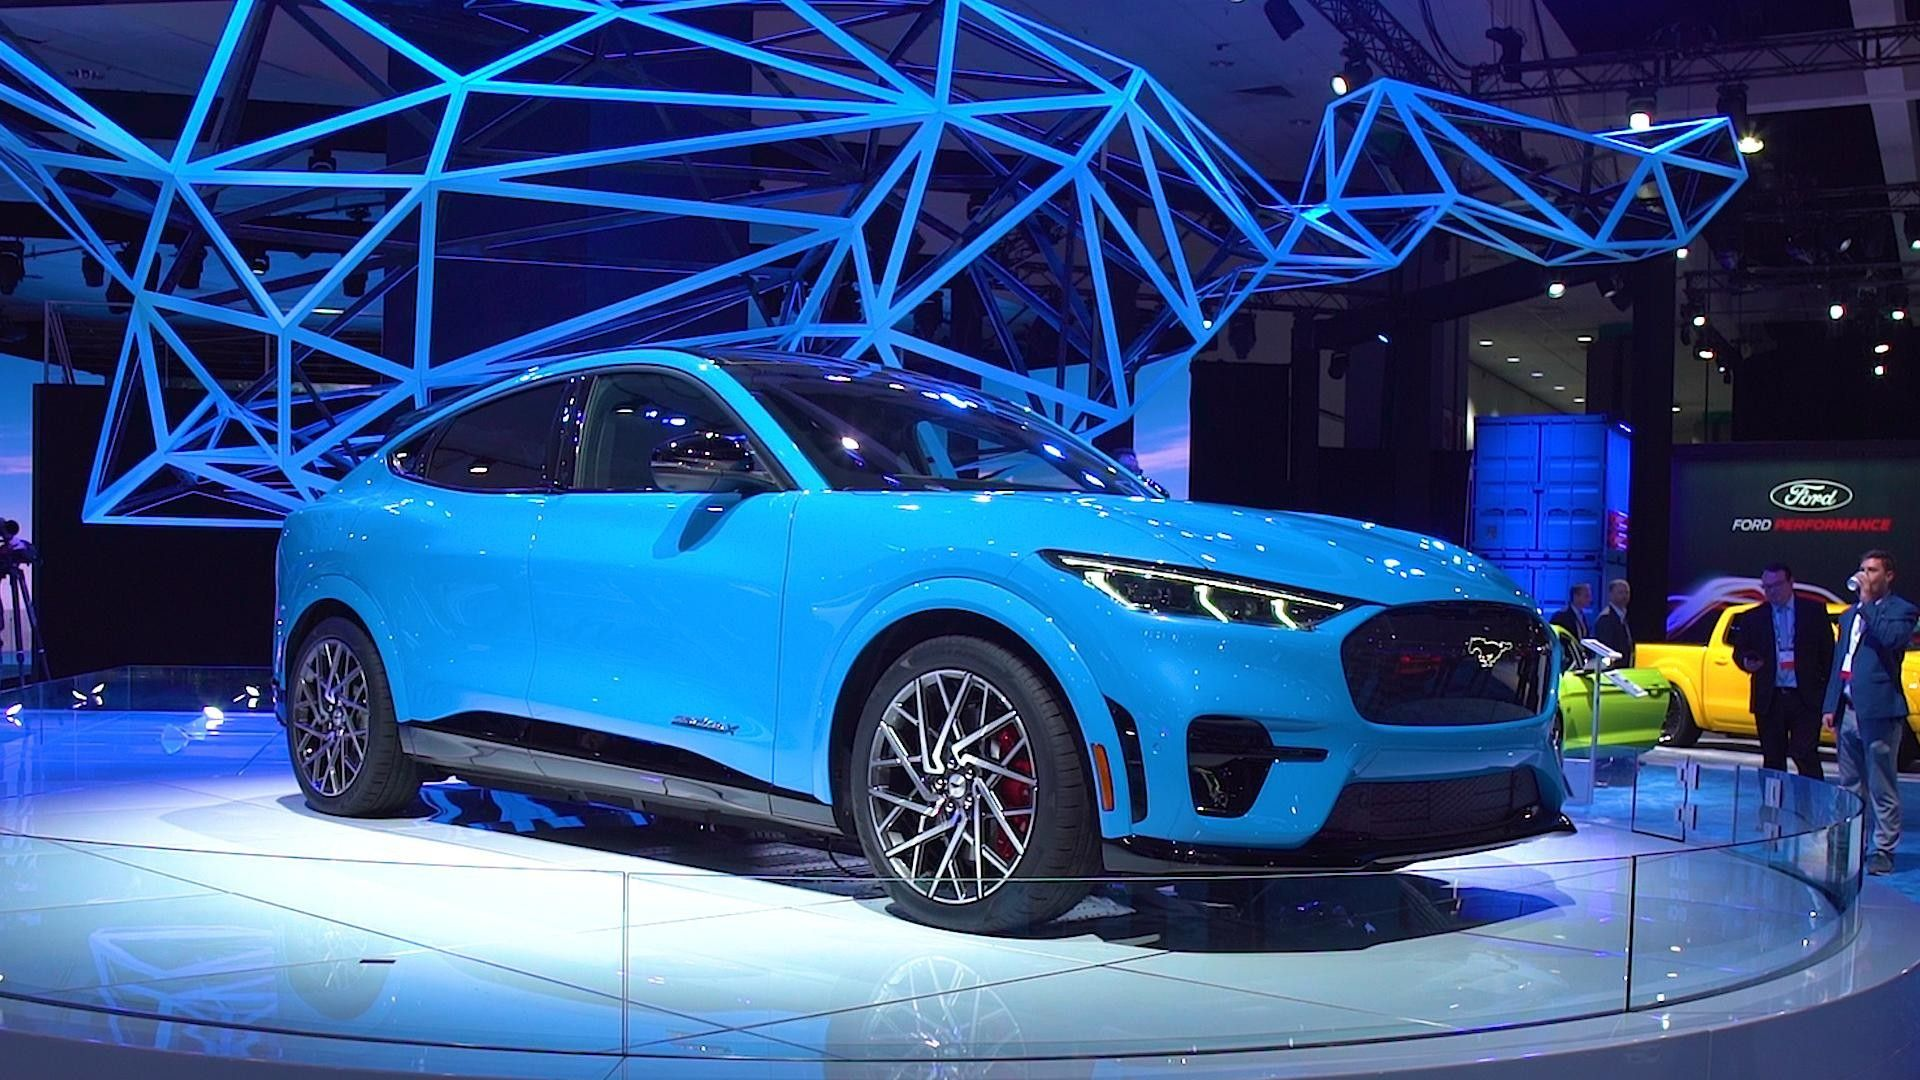 Pin By Marcus Calloway On 2020 Energetic Points Of Focus And Attraction In 2020 Mustang Ford Mustang E Electric